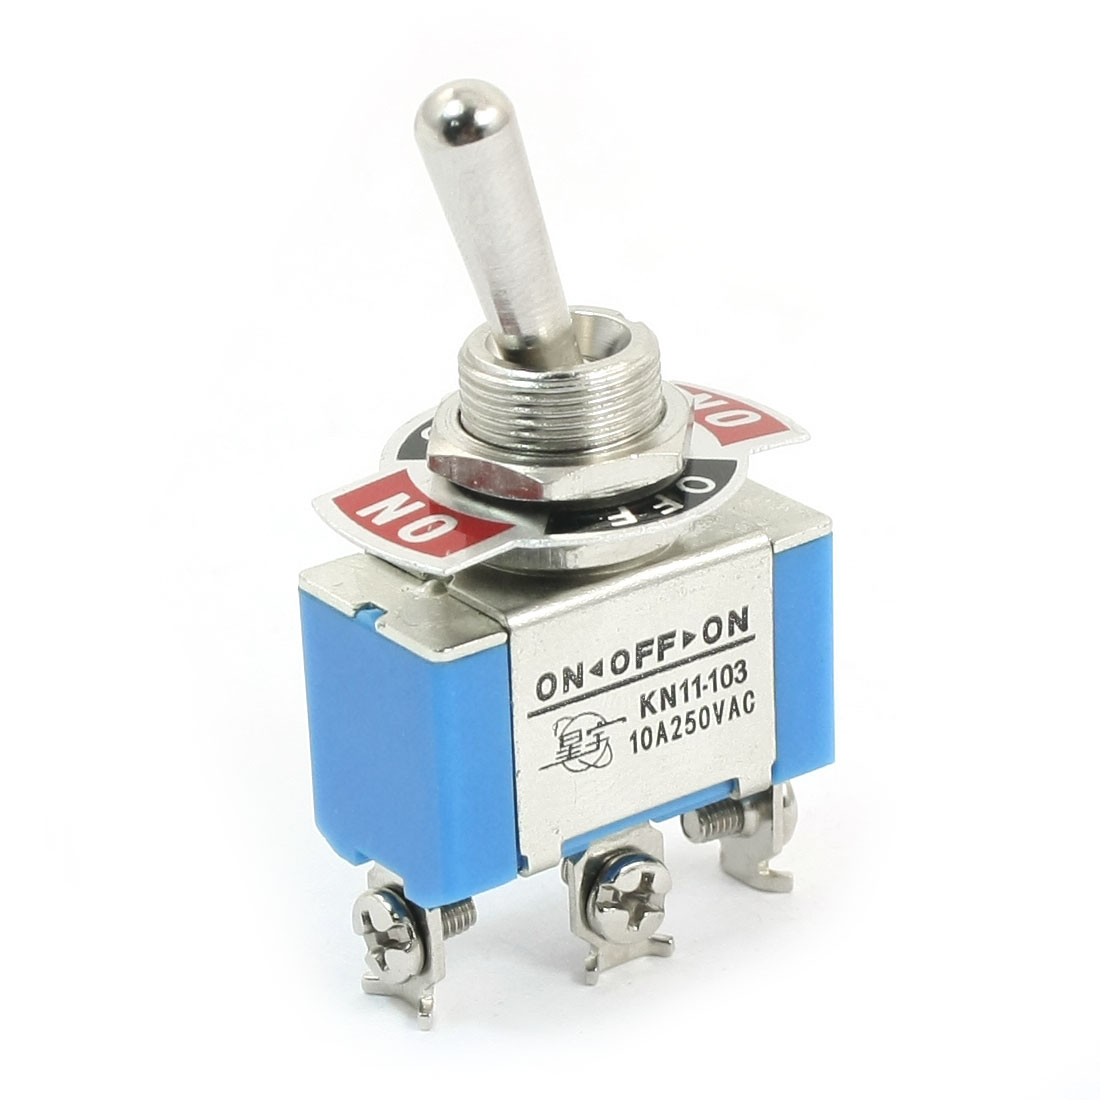 AC250V 10A SPDT 3 Positions 12mm Panel Cutout Dia Rocker Type Toggle Switch